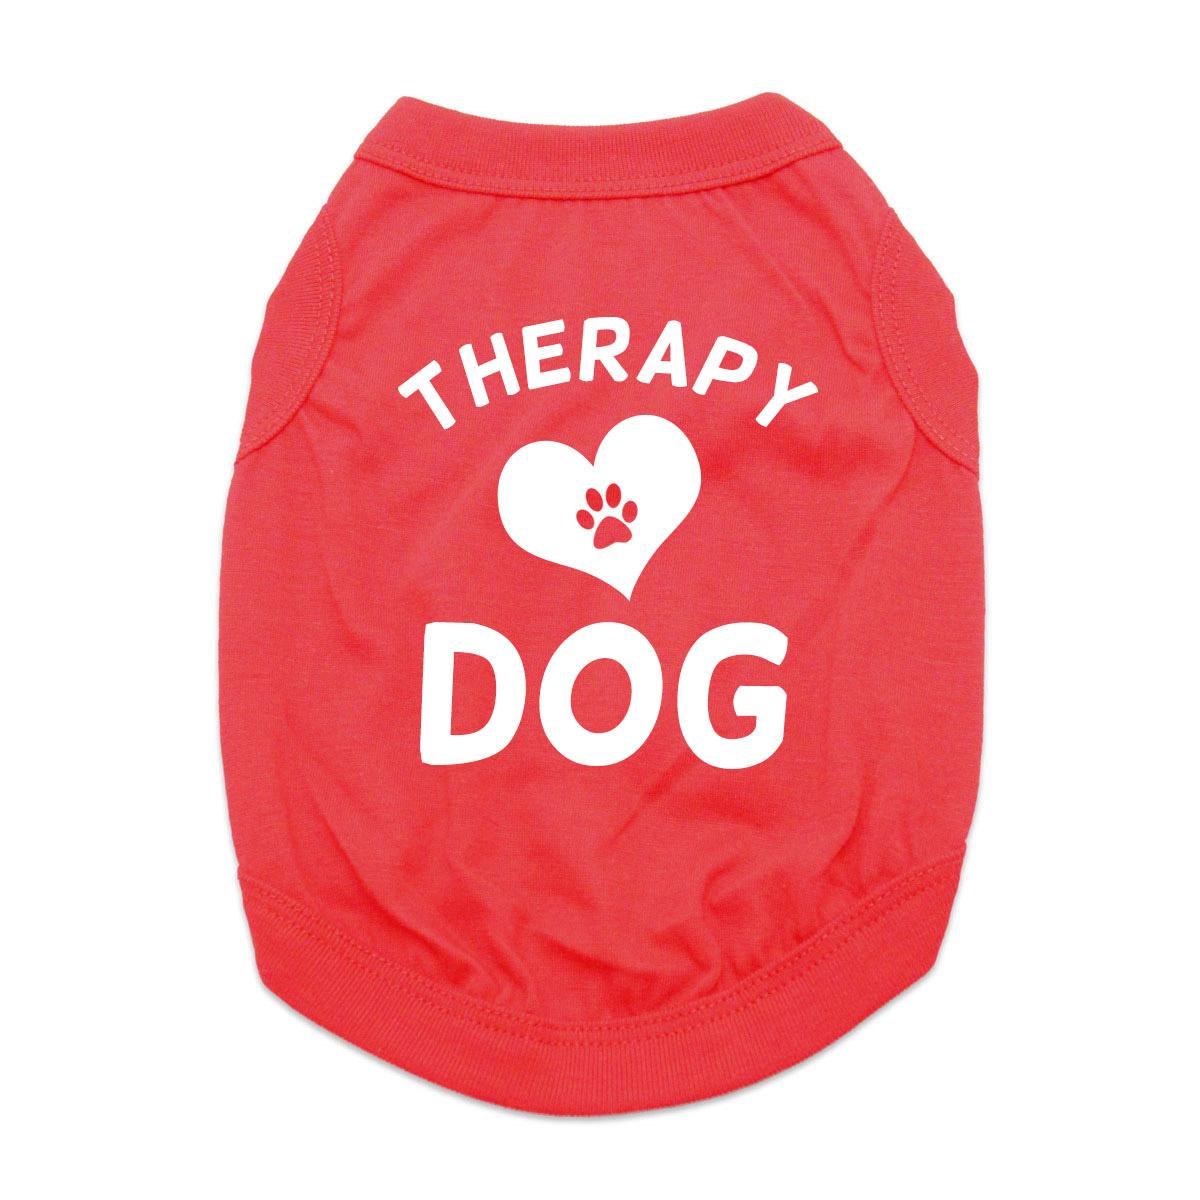 Therapy Dog Shirt - Red